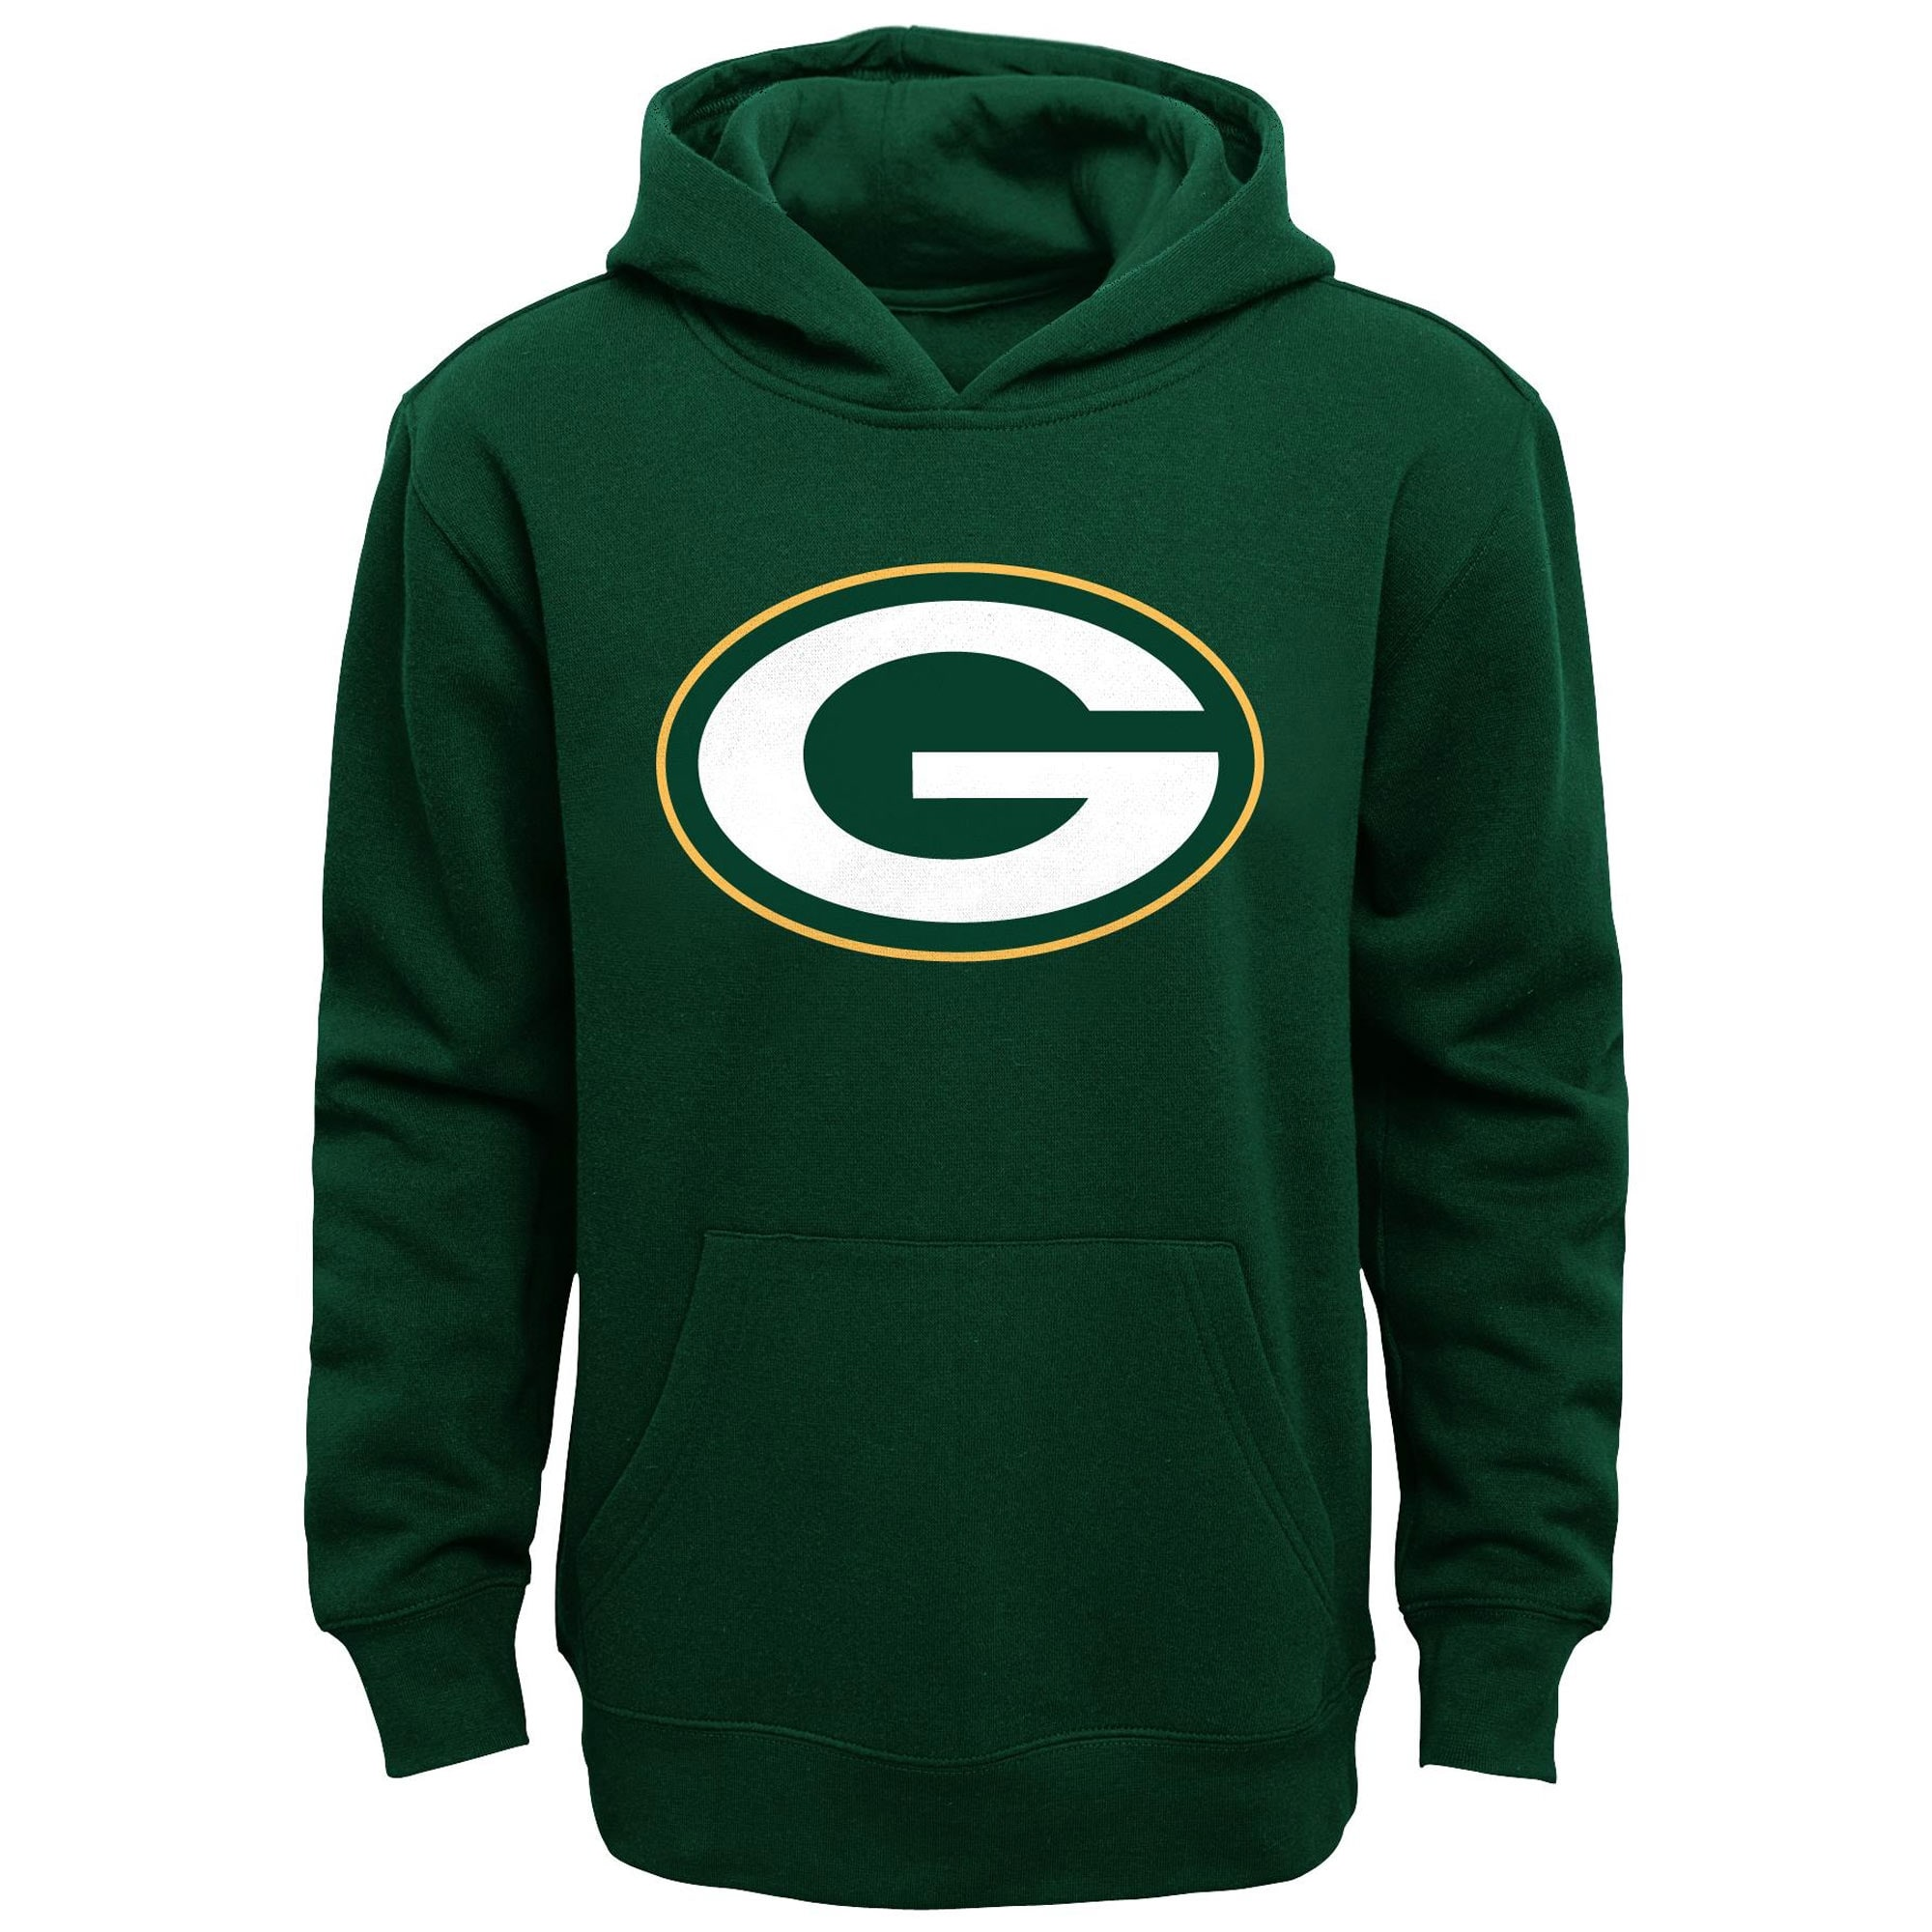 Green Bay Packers Youth Primary Logo Fleece Hoodie Sweatshirt - Green